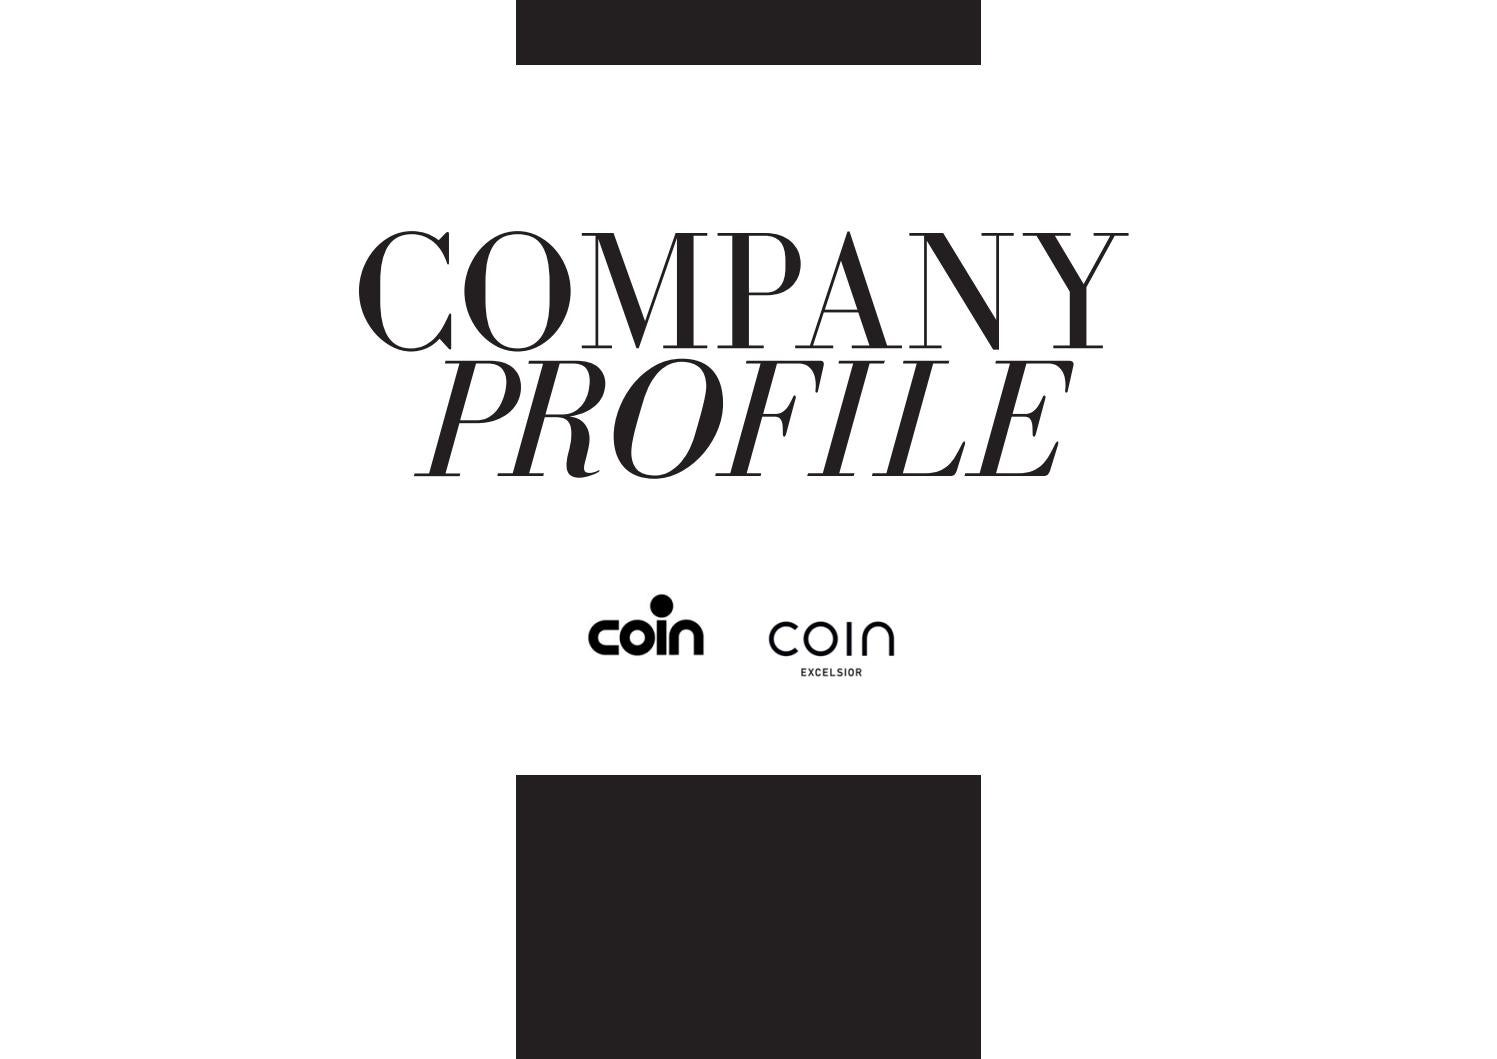 Company Profile Gruppo Ita By Coin Issuu wOPkX8n0N